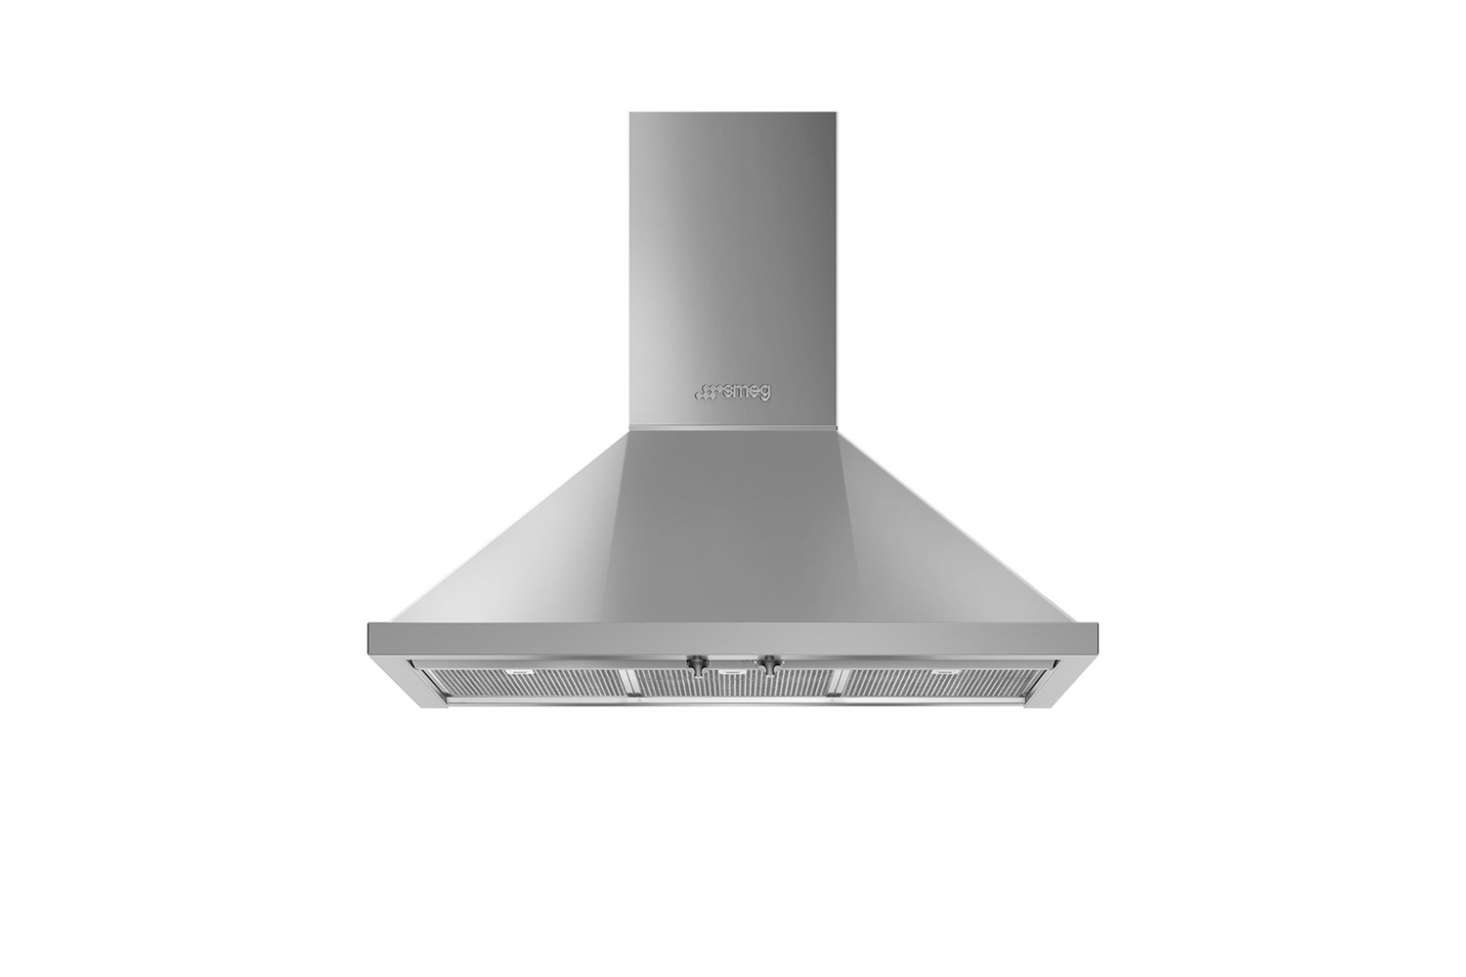 """The new Smeg 36"""" Portofino Chimney Hood is coming soon in stainless steel (shown), and is available in a range of colors for $src="""